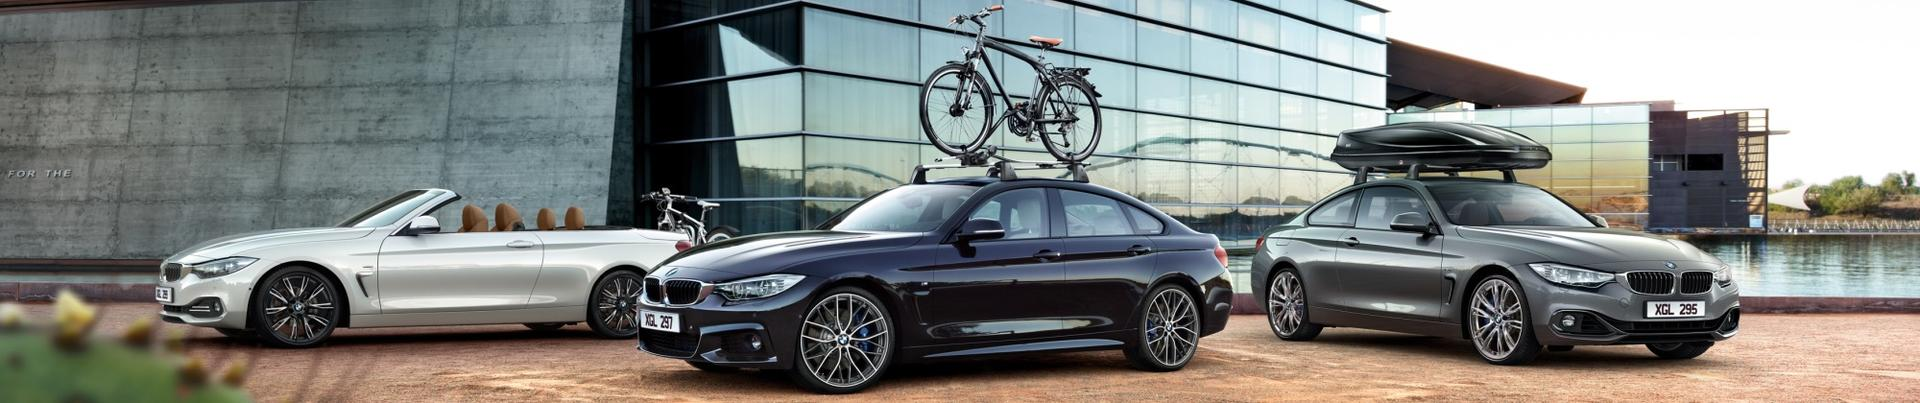 BMW Accessories range